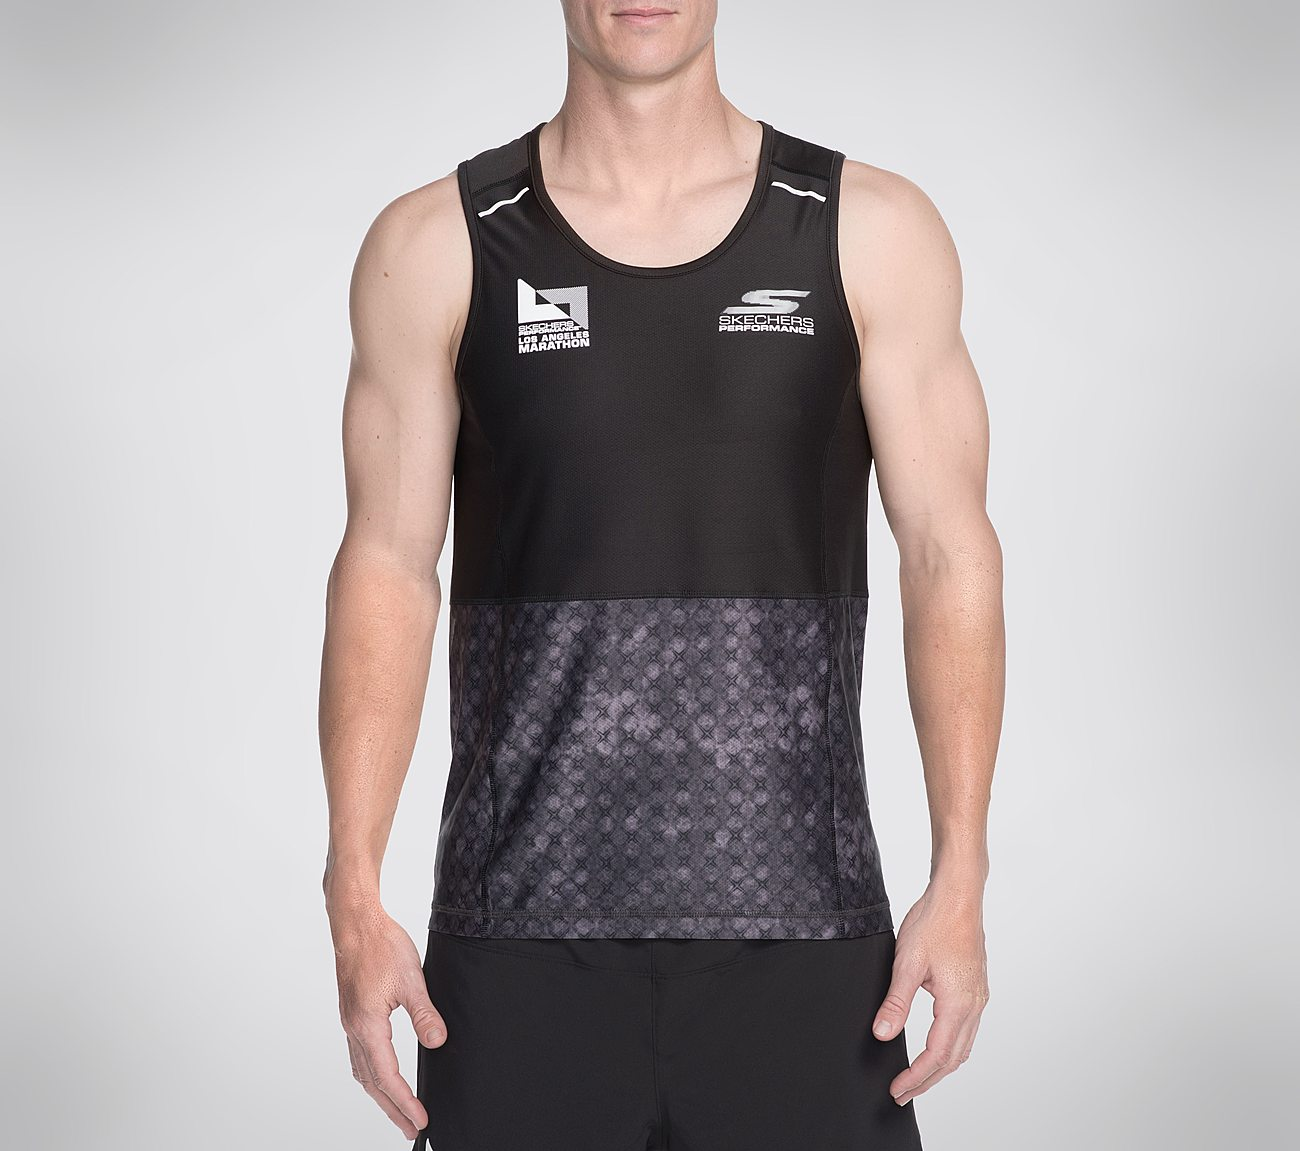 833bcc05a50886 Sub-4 Singlet Tank Top Skechers Performance Los Angeles Marathon. Click tap  to zoom